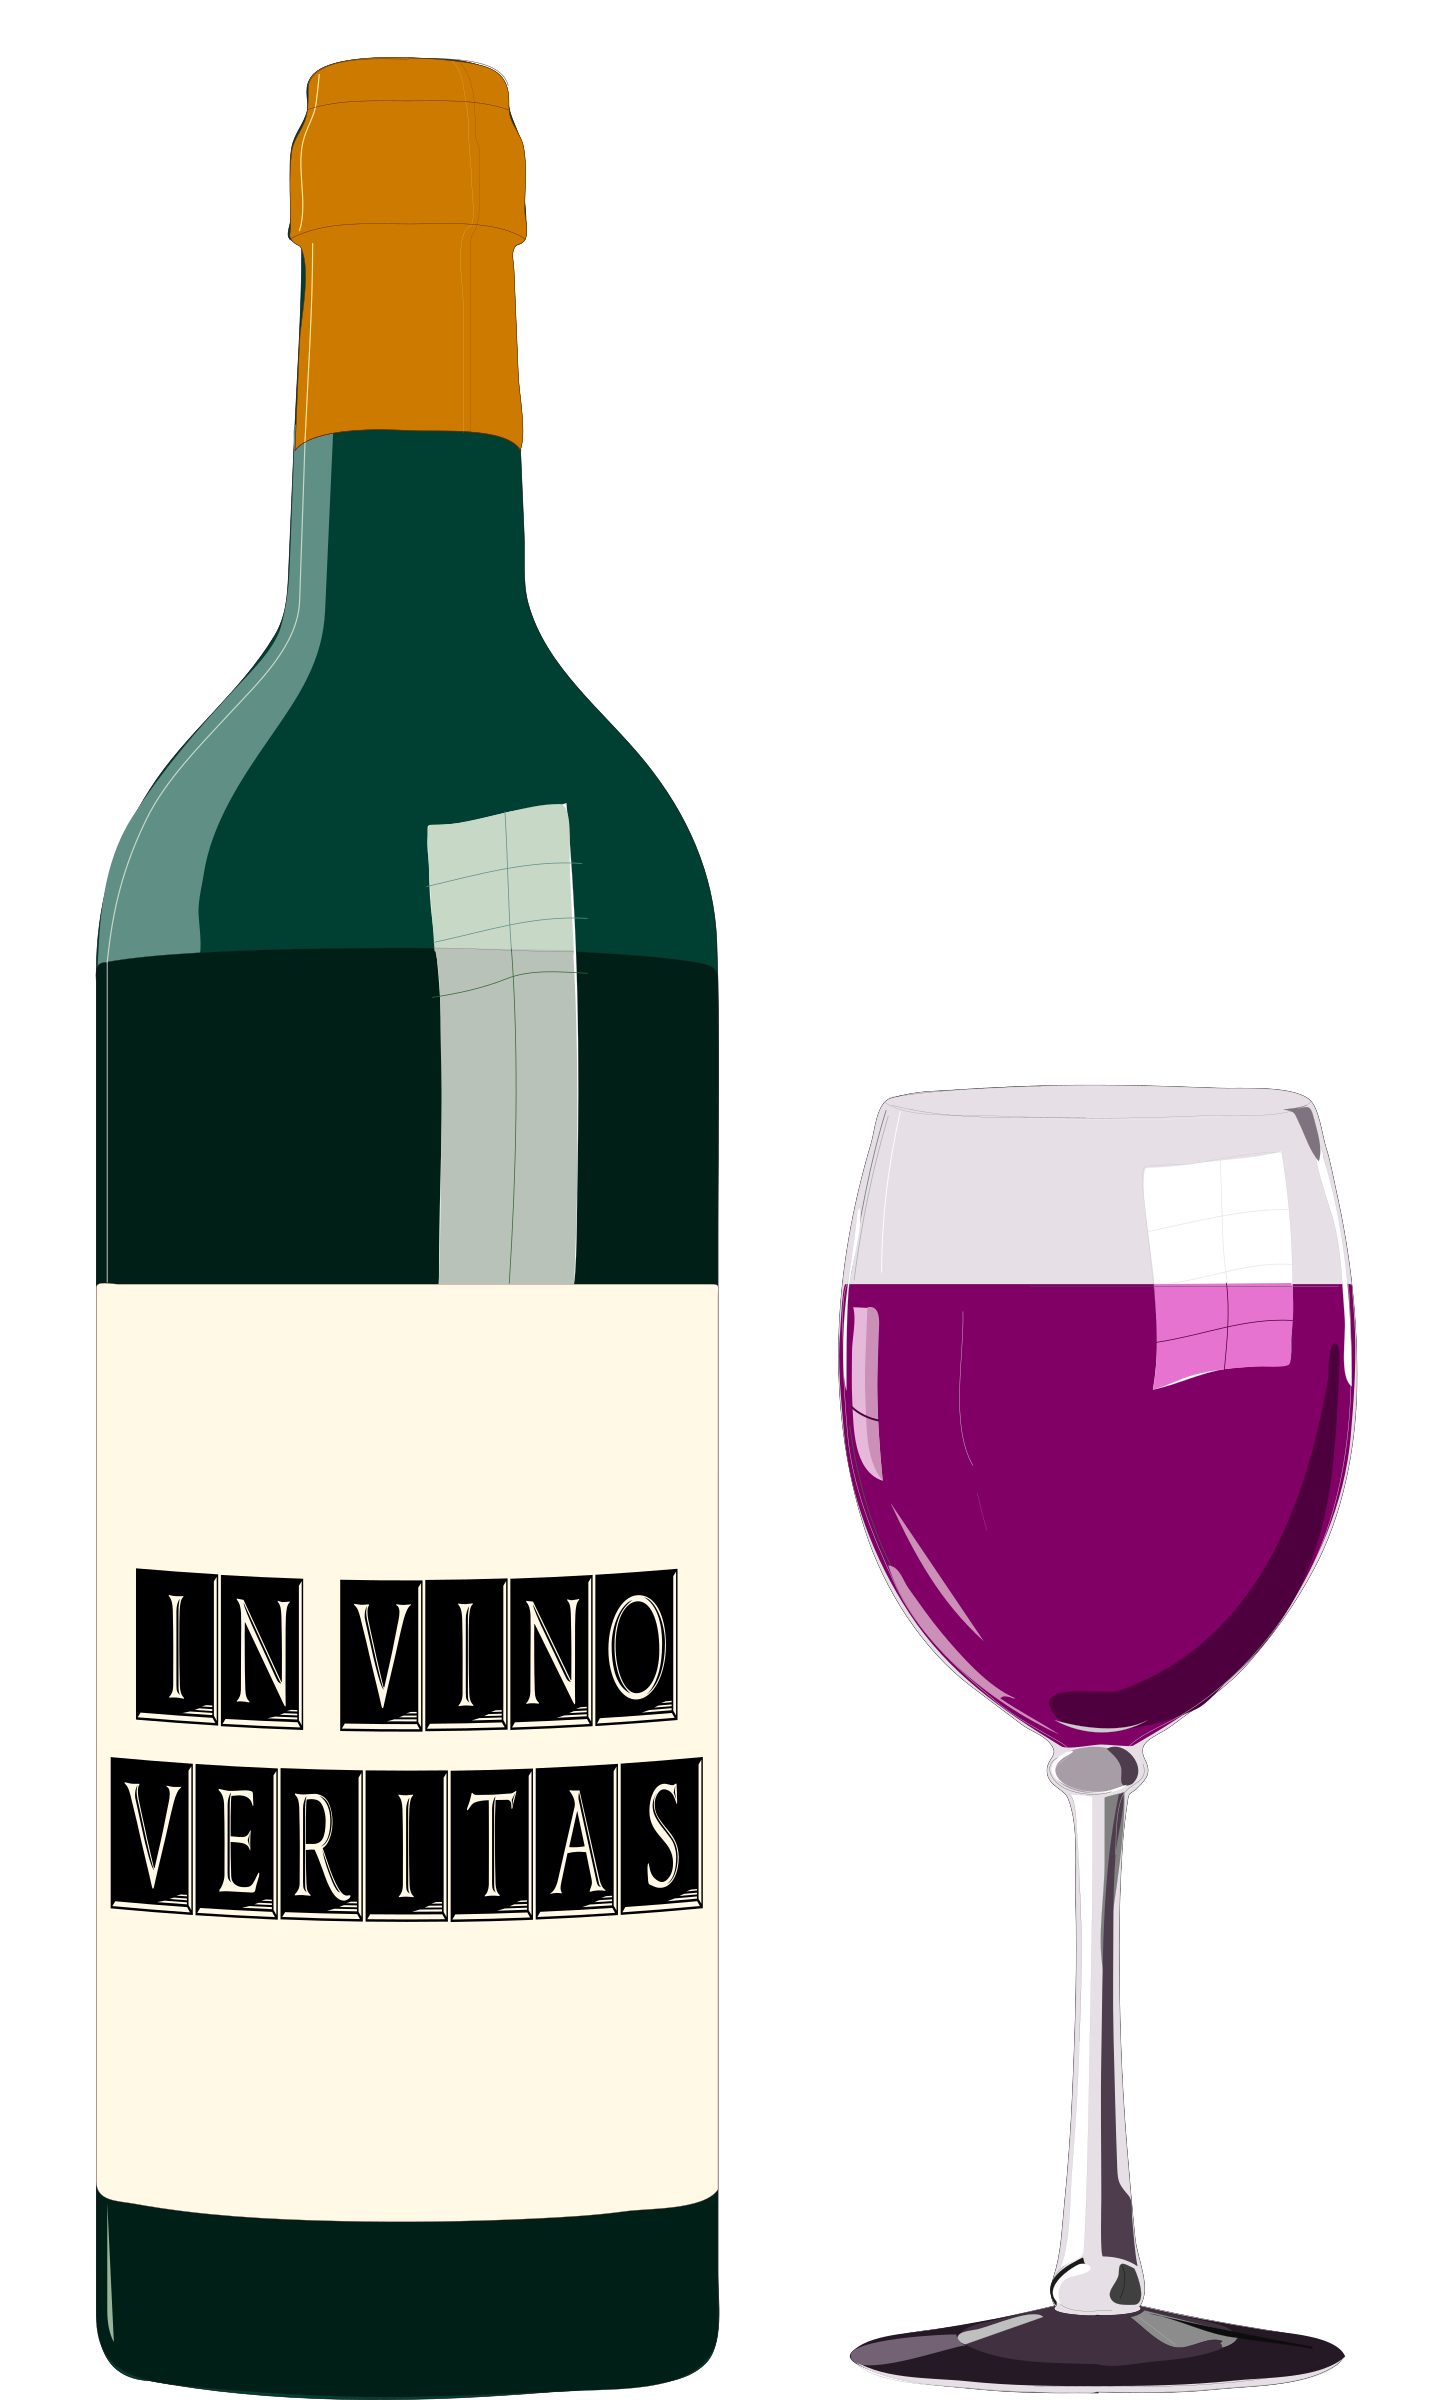 In Vino Veritas by GDJ